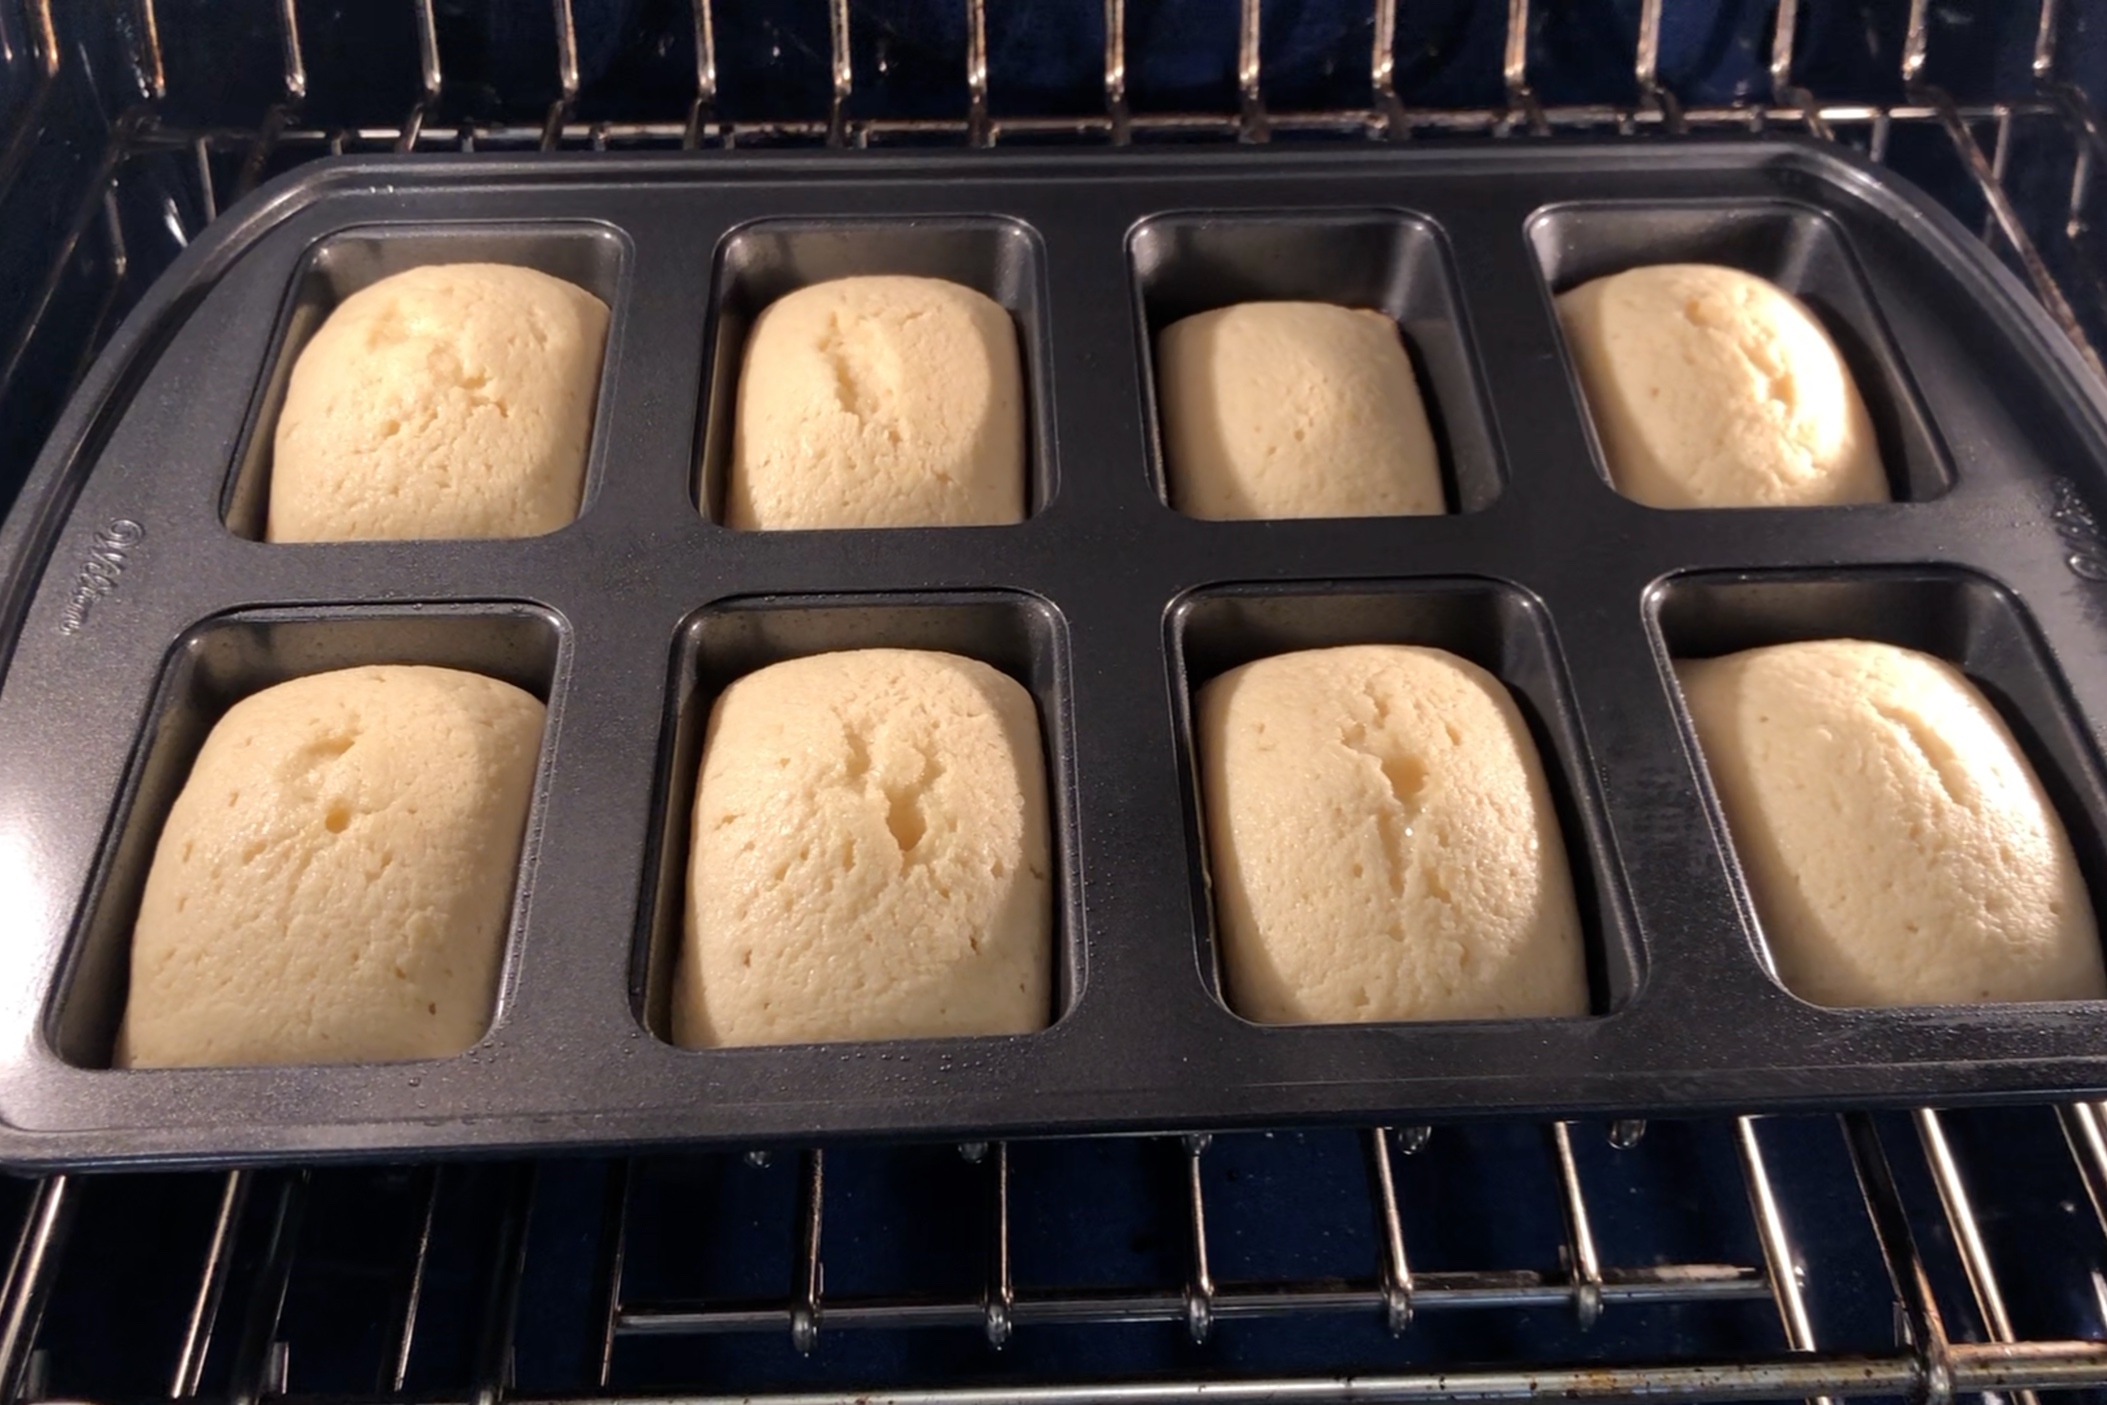 10. Bake for 18-20 or until a toothpick inserted into the center comes out mostly clean. -